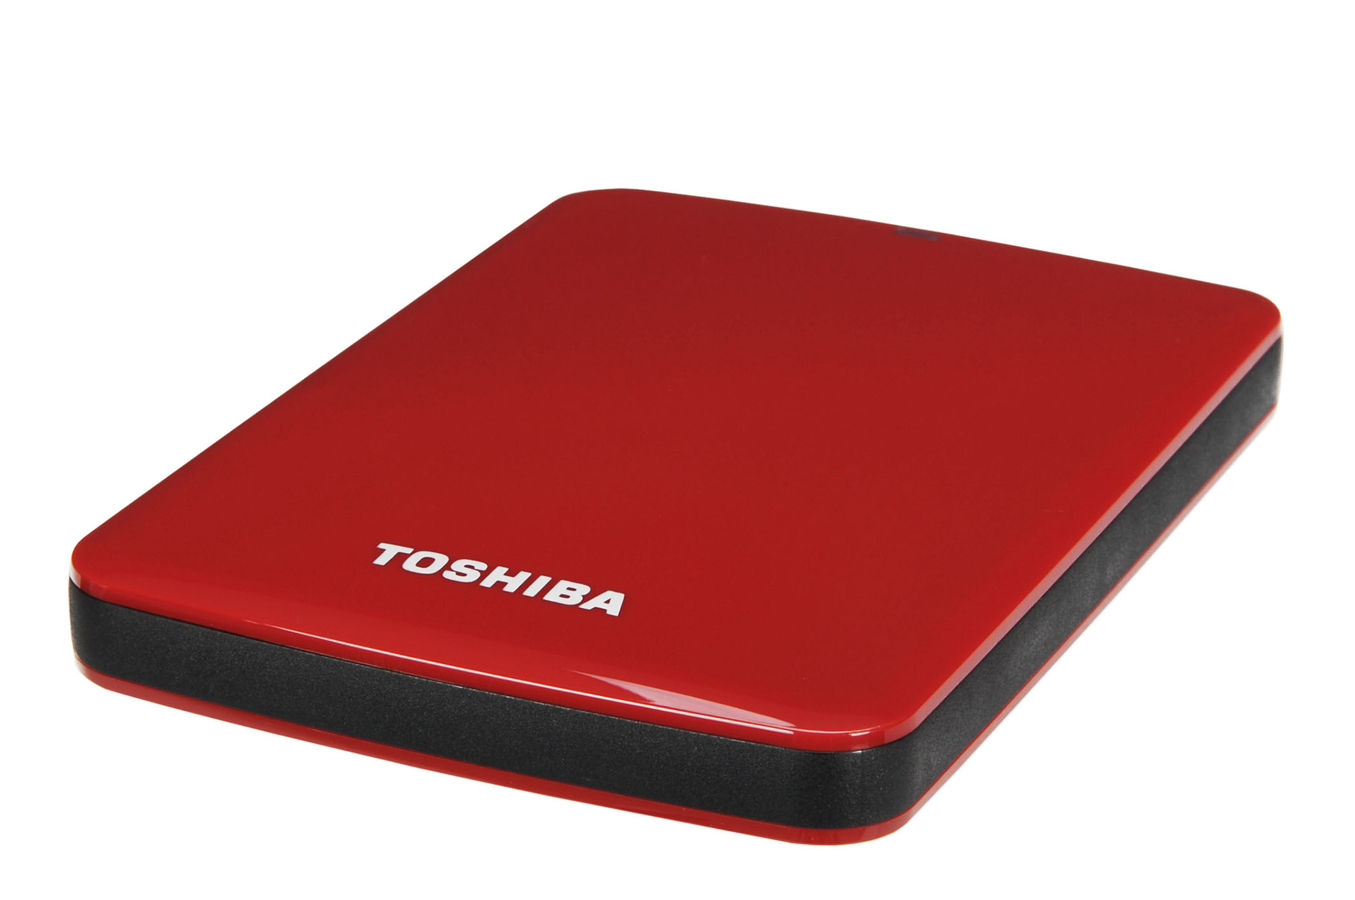 disque dur externe toshiba stor e canvio 2 5 500 go usb 3 0 rouge 2 5 500 go new canvio. Black Bedroom Furniture Sets. Home Design Ideas